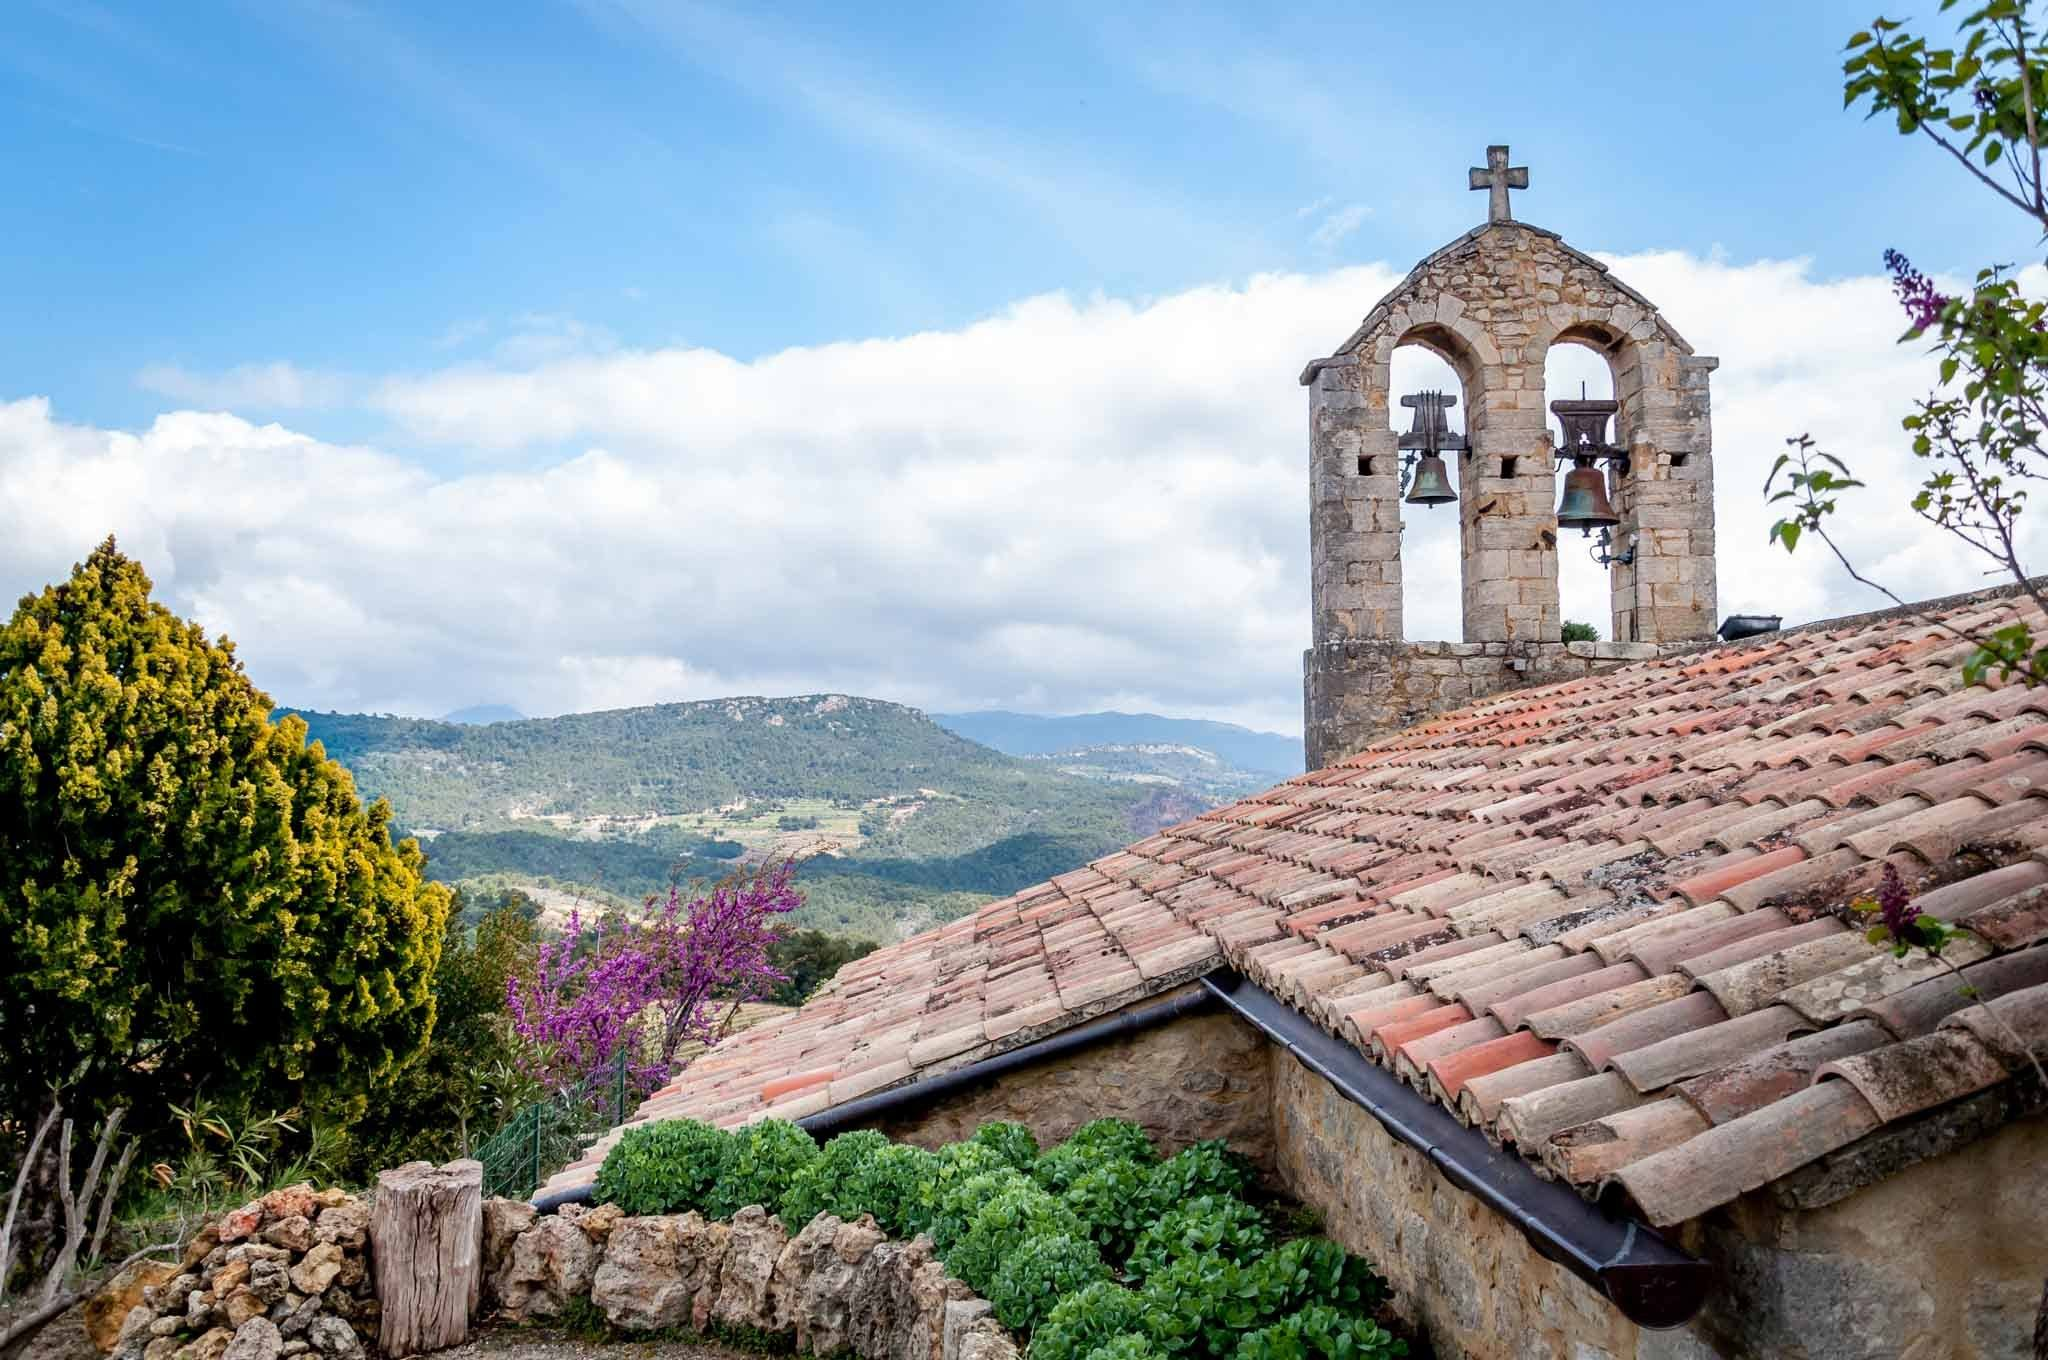 Hilltop church with a bell tower